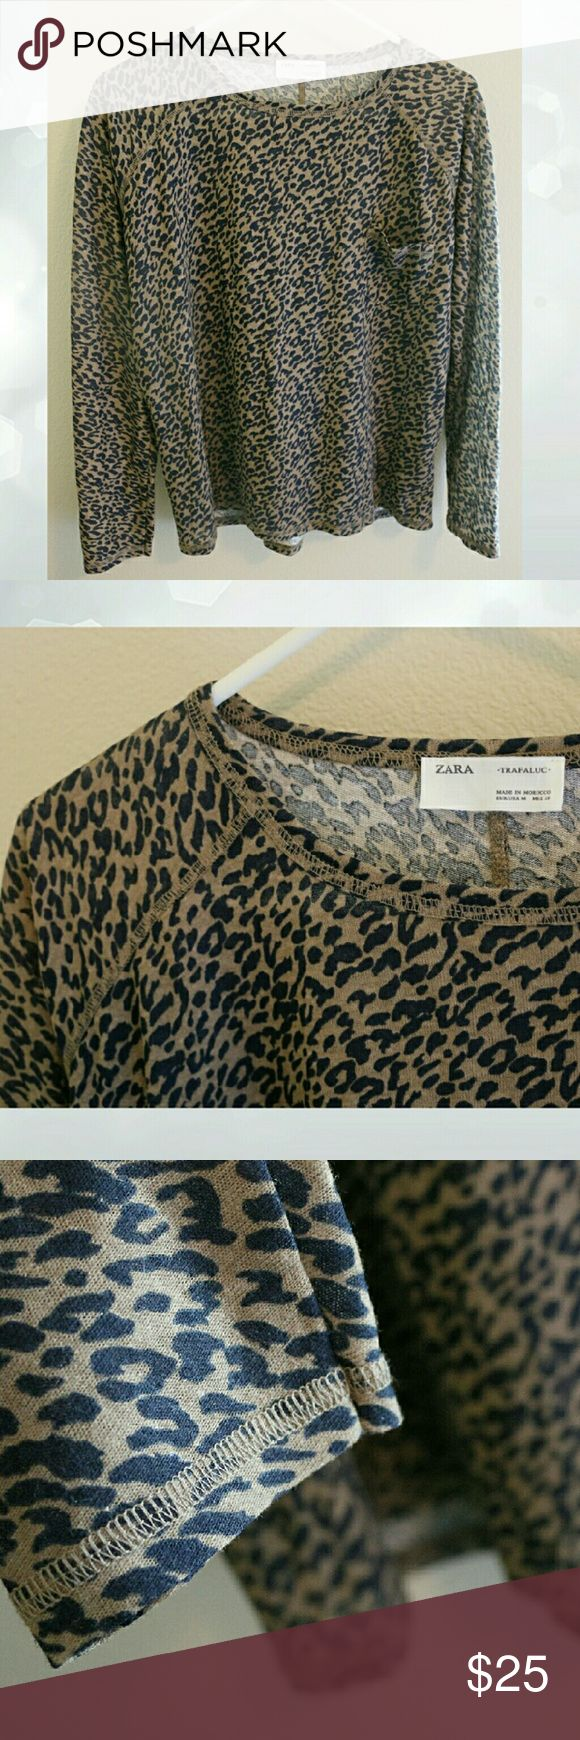 ZARA, long sleeve top, animal print, NWOT ZARA brand (Trafaluc), animal print long sleeve top.  Perfect brand new condition,  but without tags.  Great stitching details!! Zara Tops Blouses